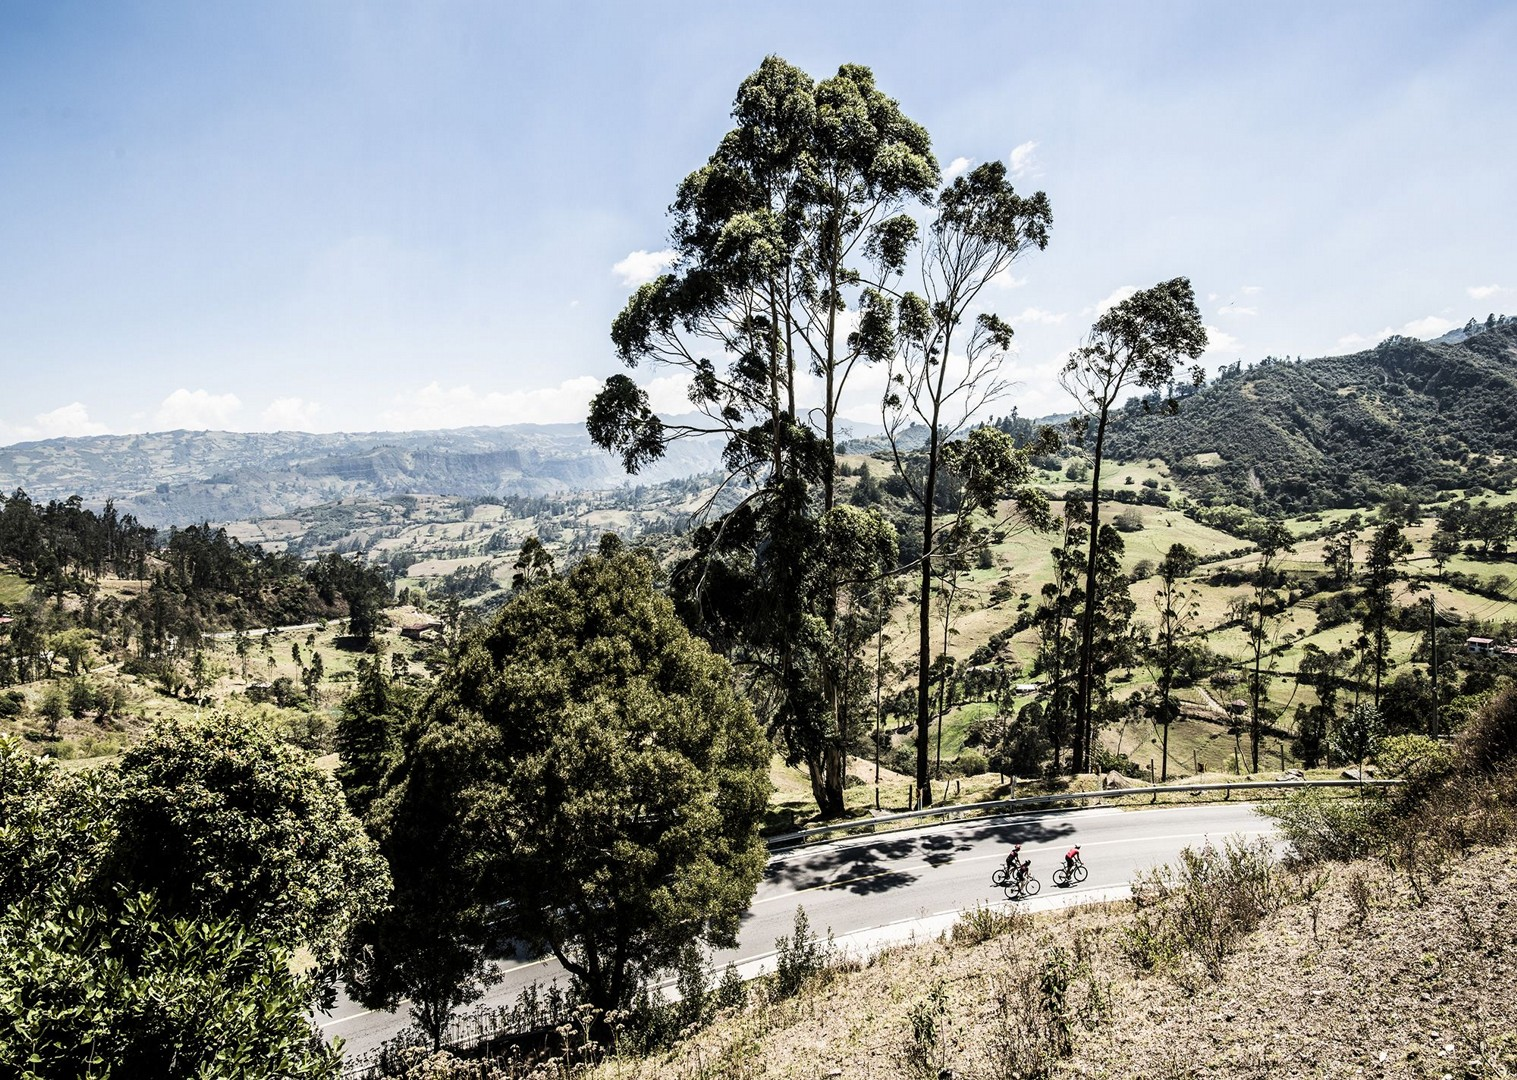 day_2_022.jpg - Colombia - Emerald Mountains - Road Cycling